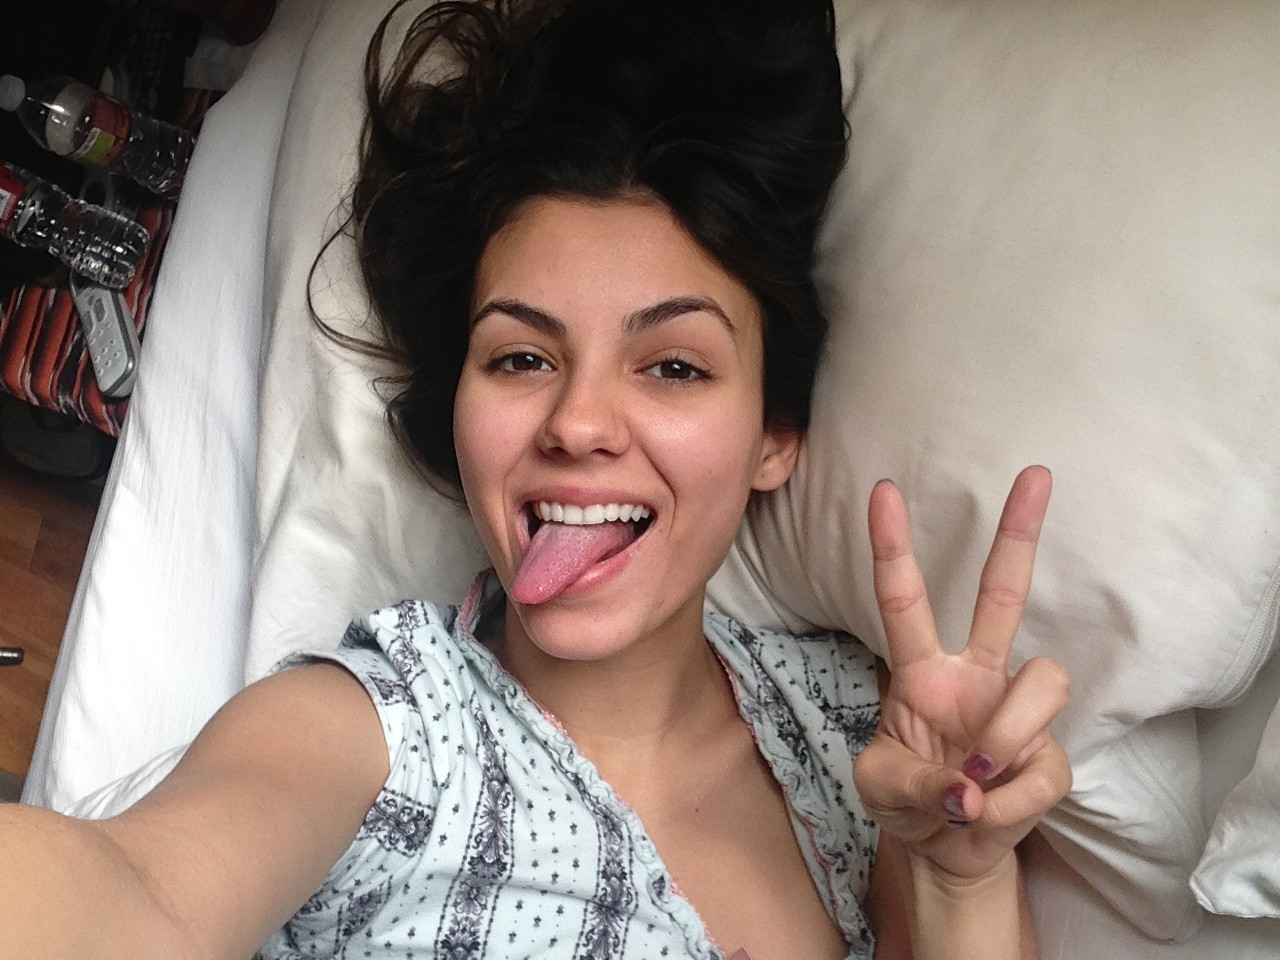 Victoria-Justice-Naked-03510a5df5f0fe3b3a.jpg